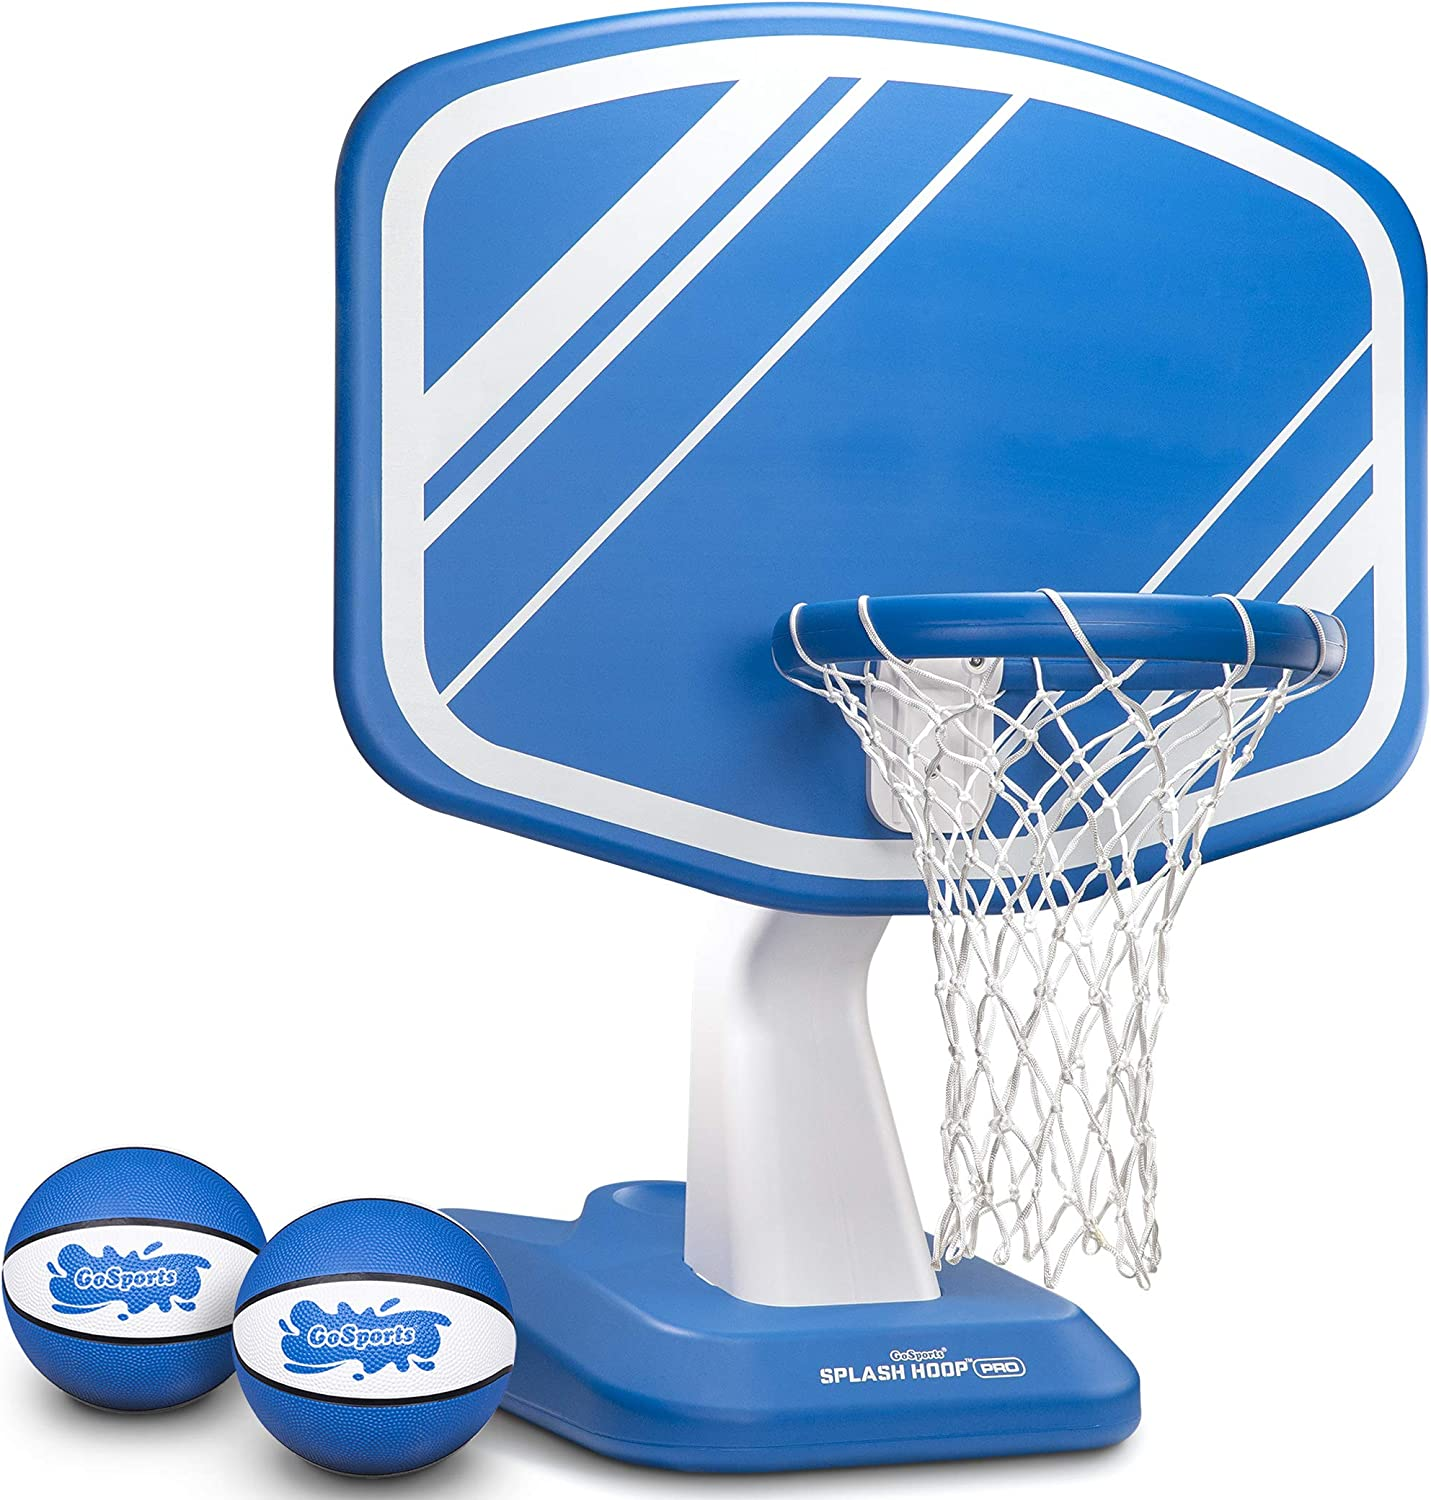 The 7 best pool basketball hoops set in 2020 (Buying Guide) 3